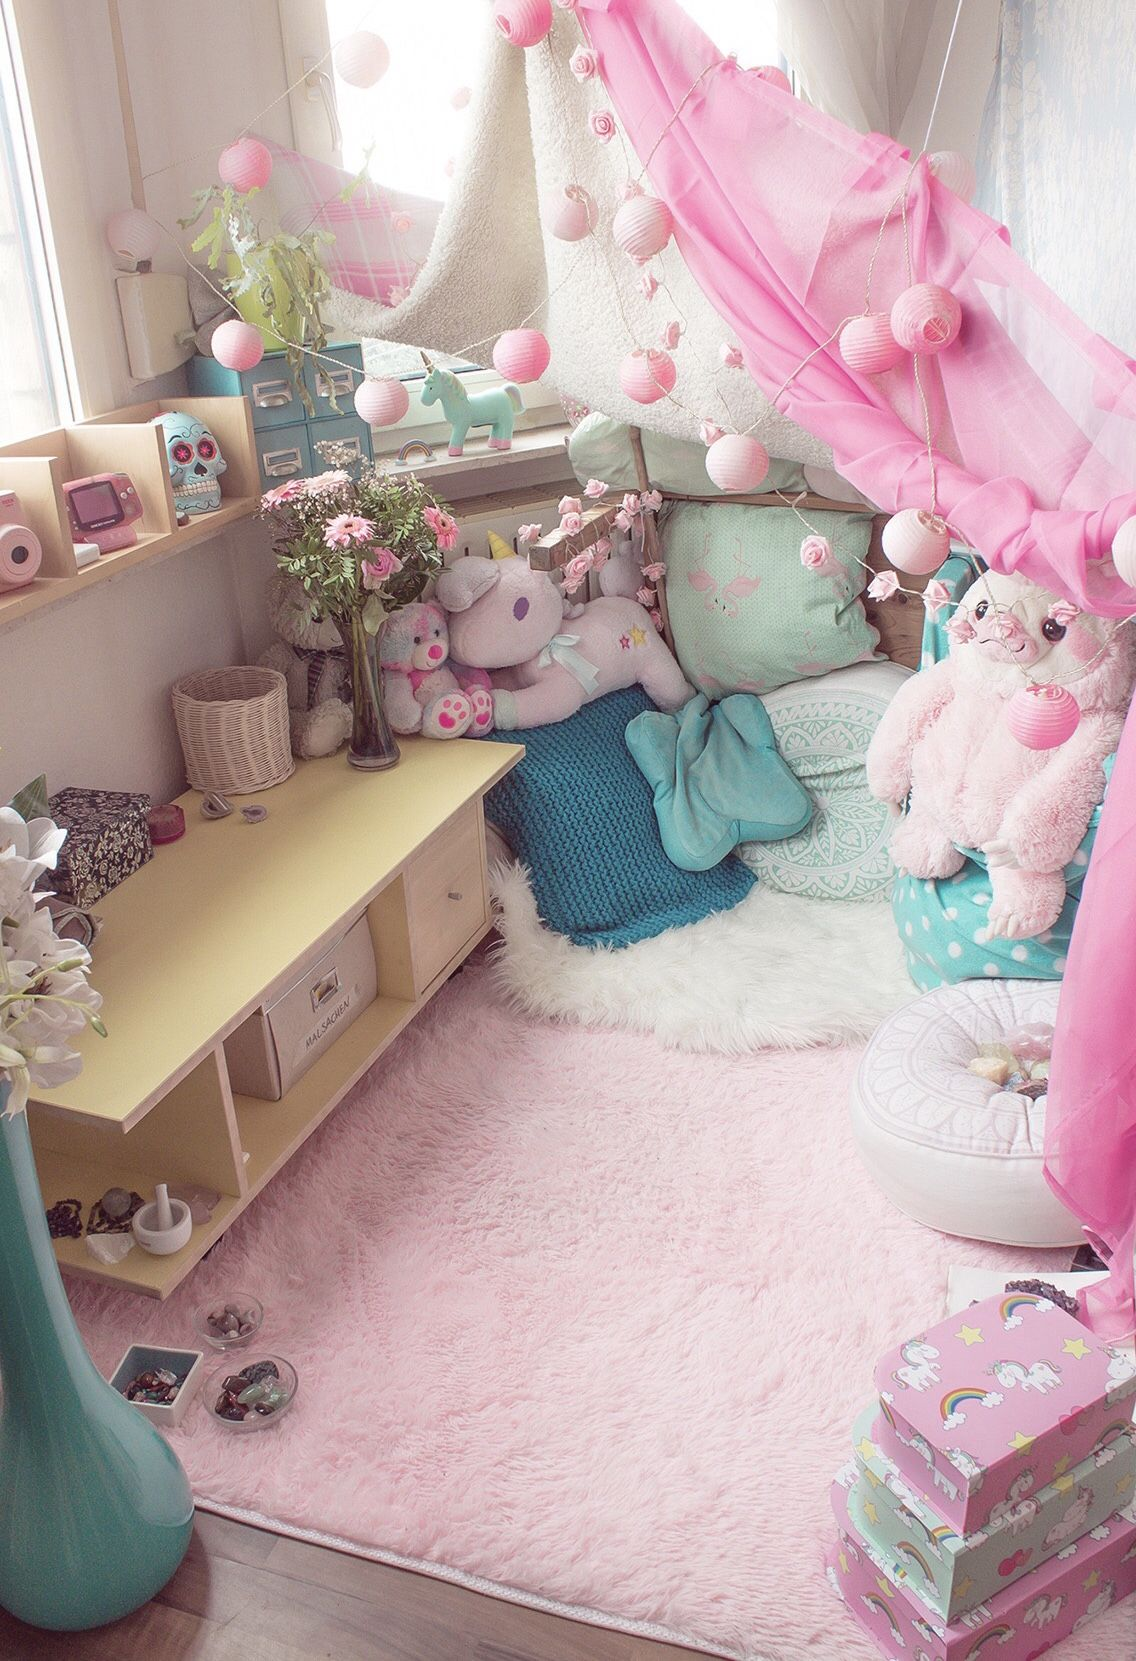 Pin On Abdl Ddlg Mdlb Pet Play Furry Dollification